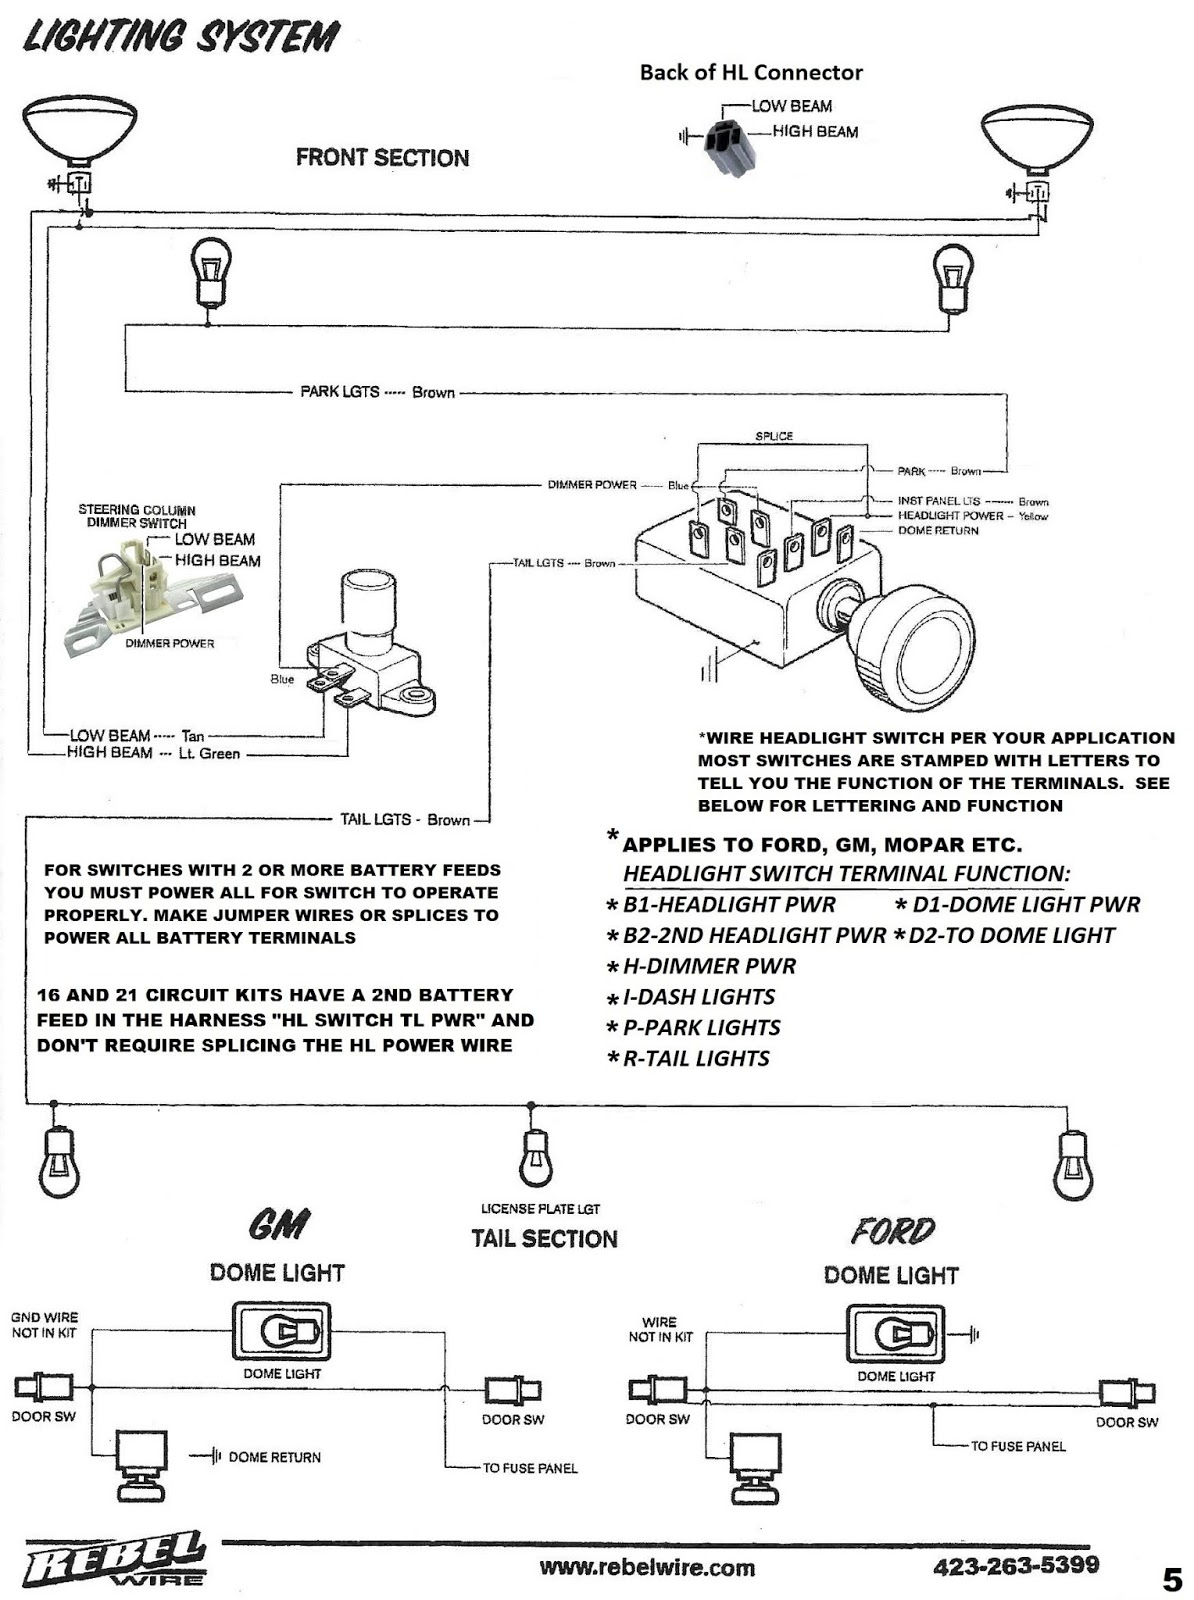 1936 Ford Headlight Switch Wiring   Wiring Library